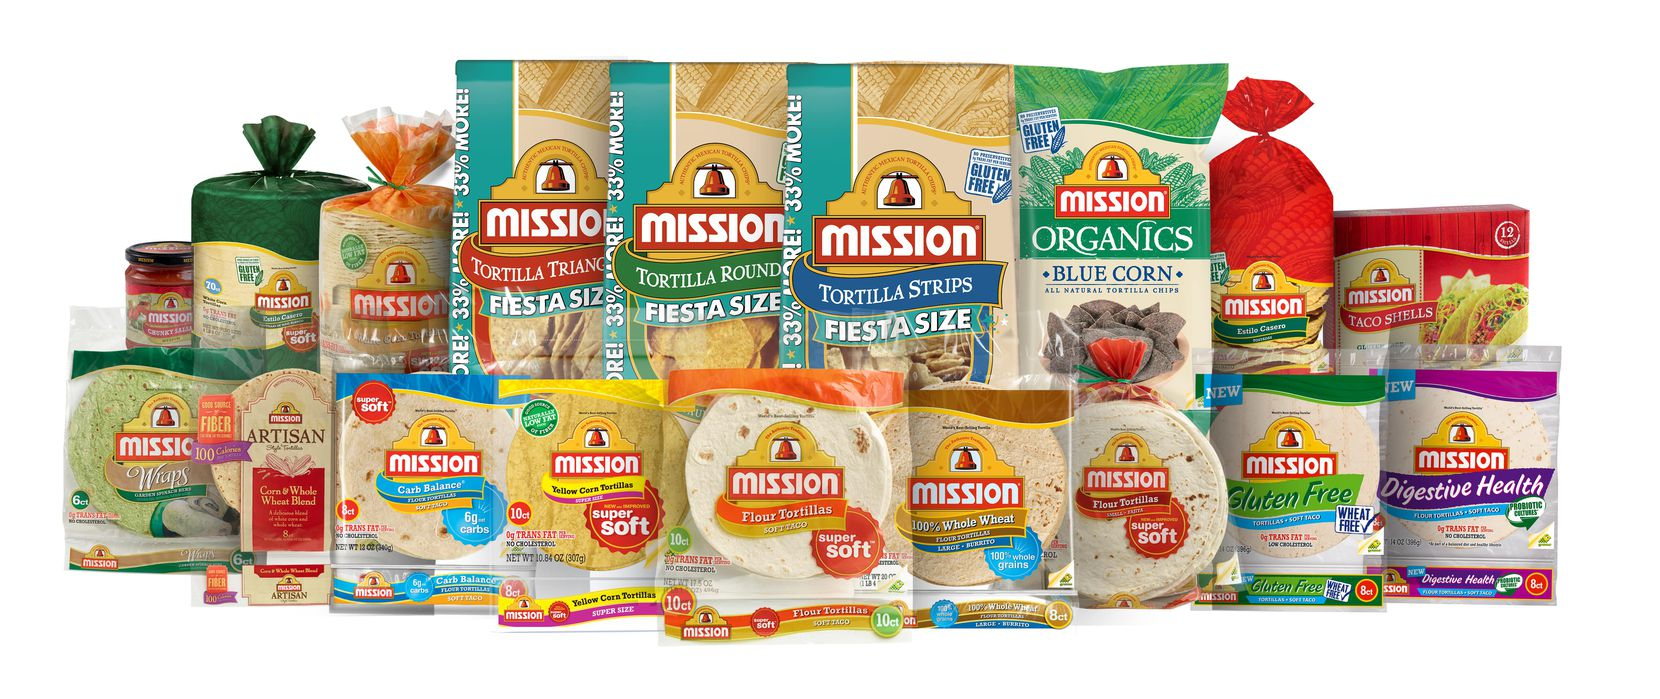 Mission Foods' tortilla products are among the most recognizable in the U.S.